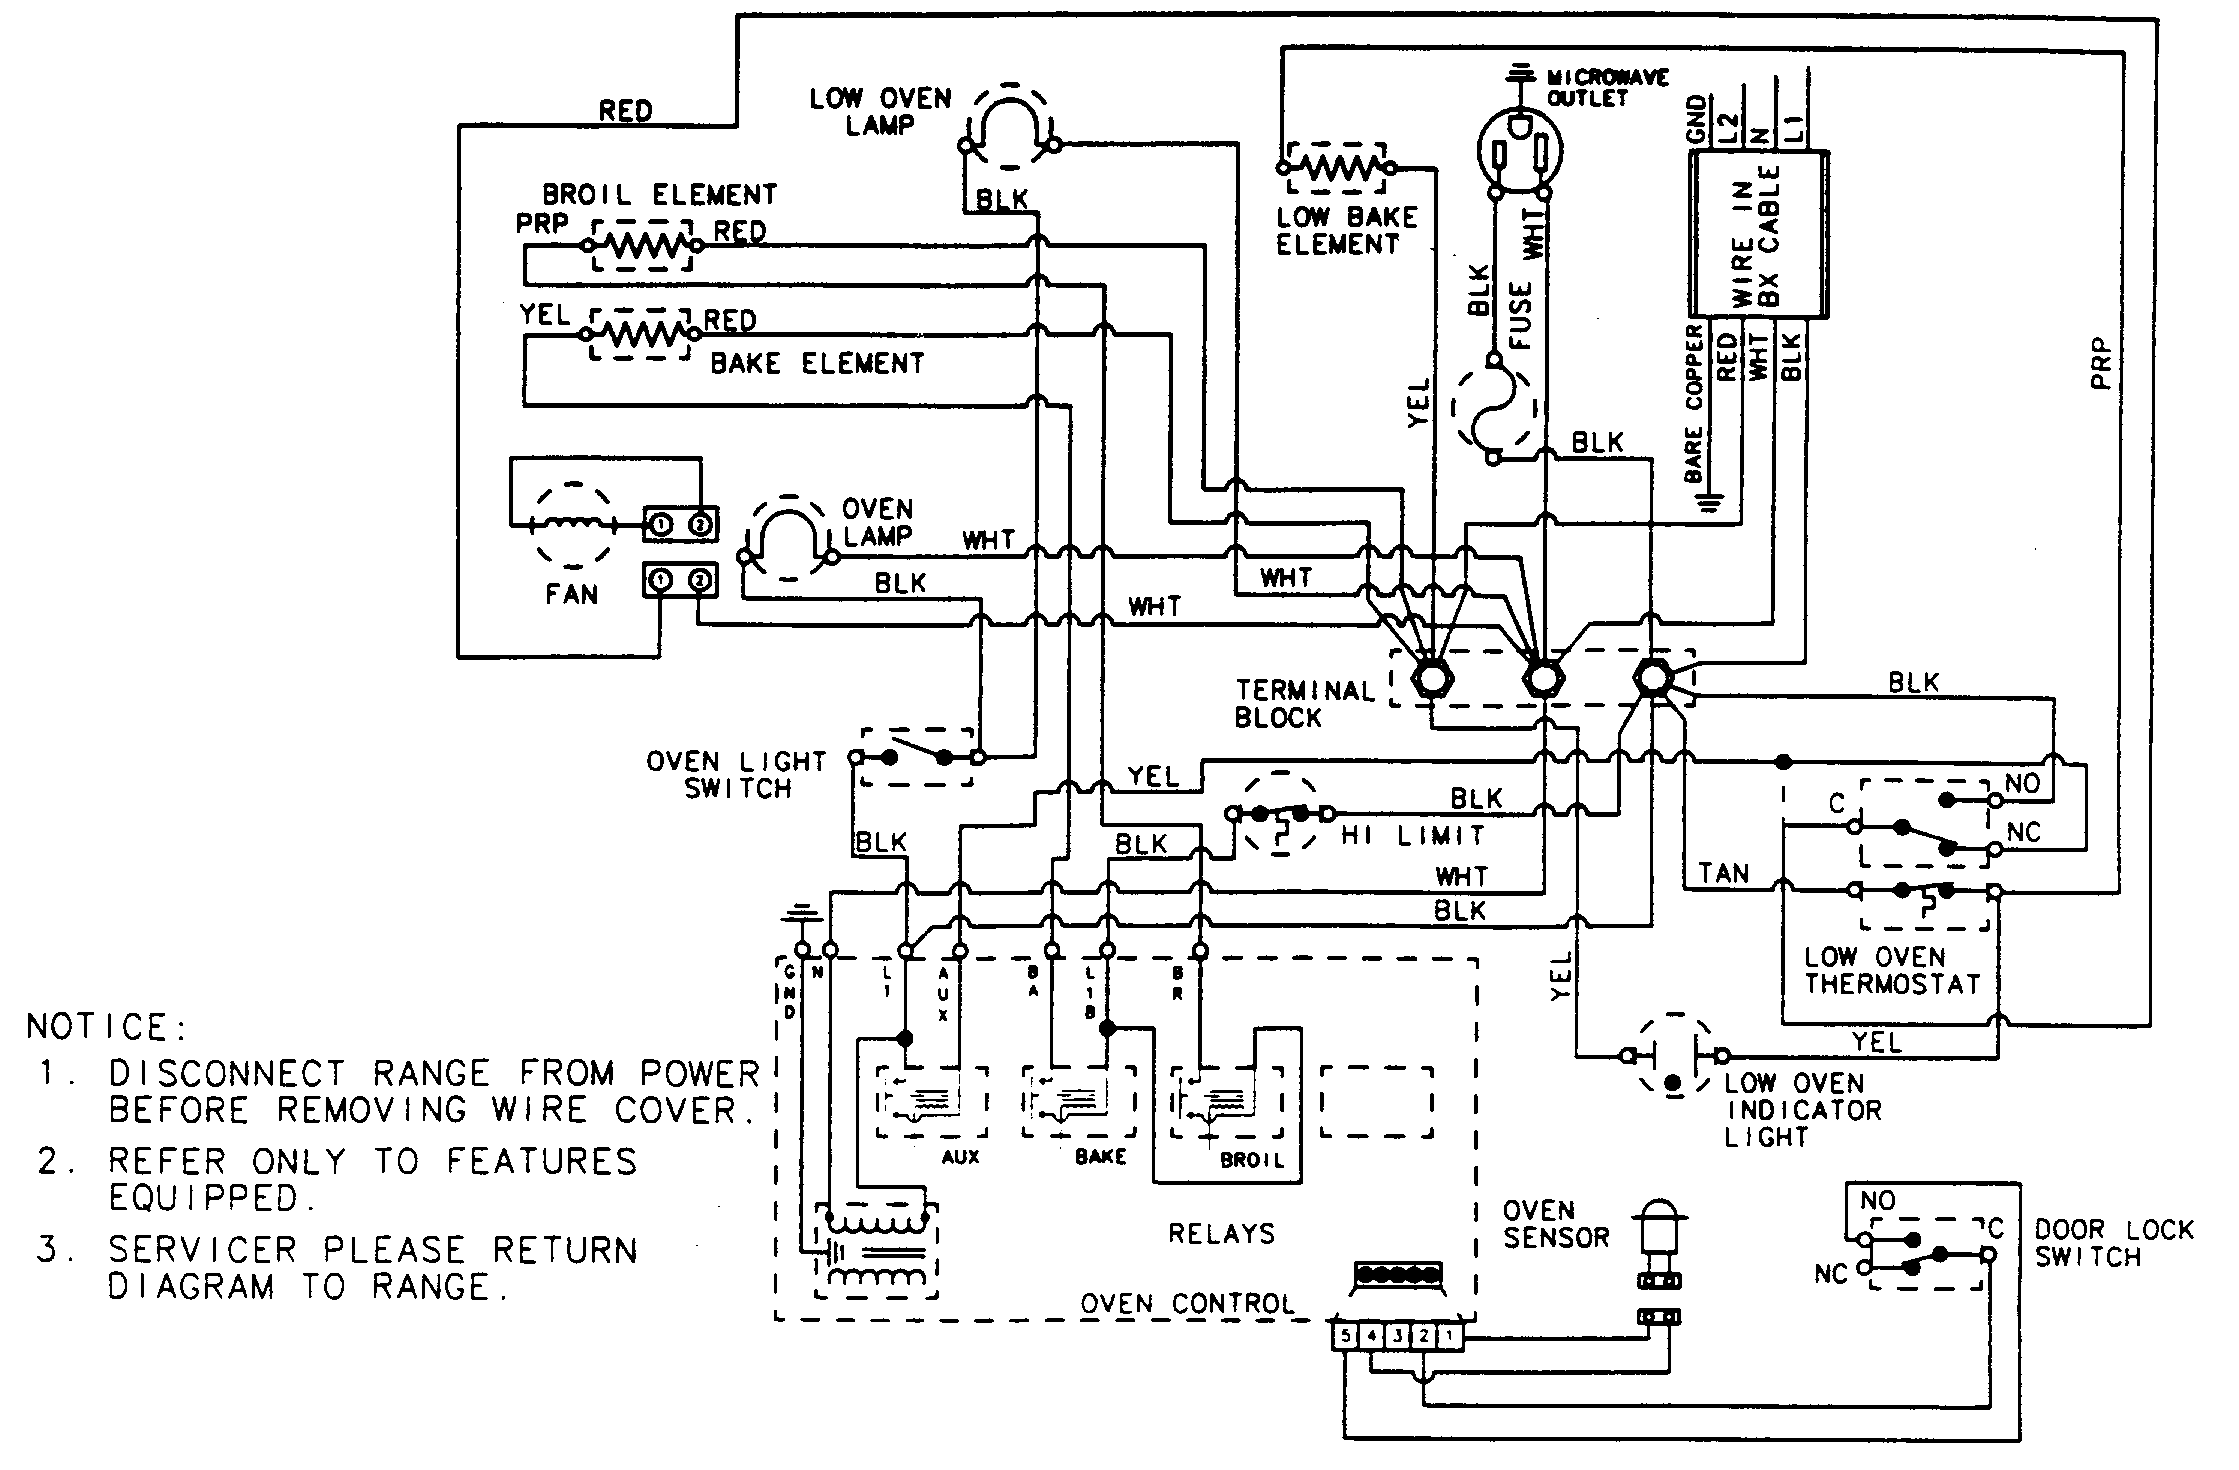 wiring diagram for electric range  u2013 the wiring diagram  u2013 readingrat net